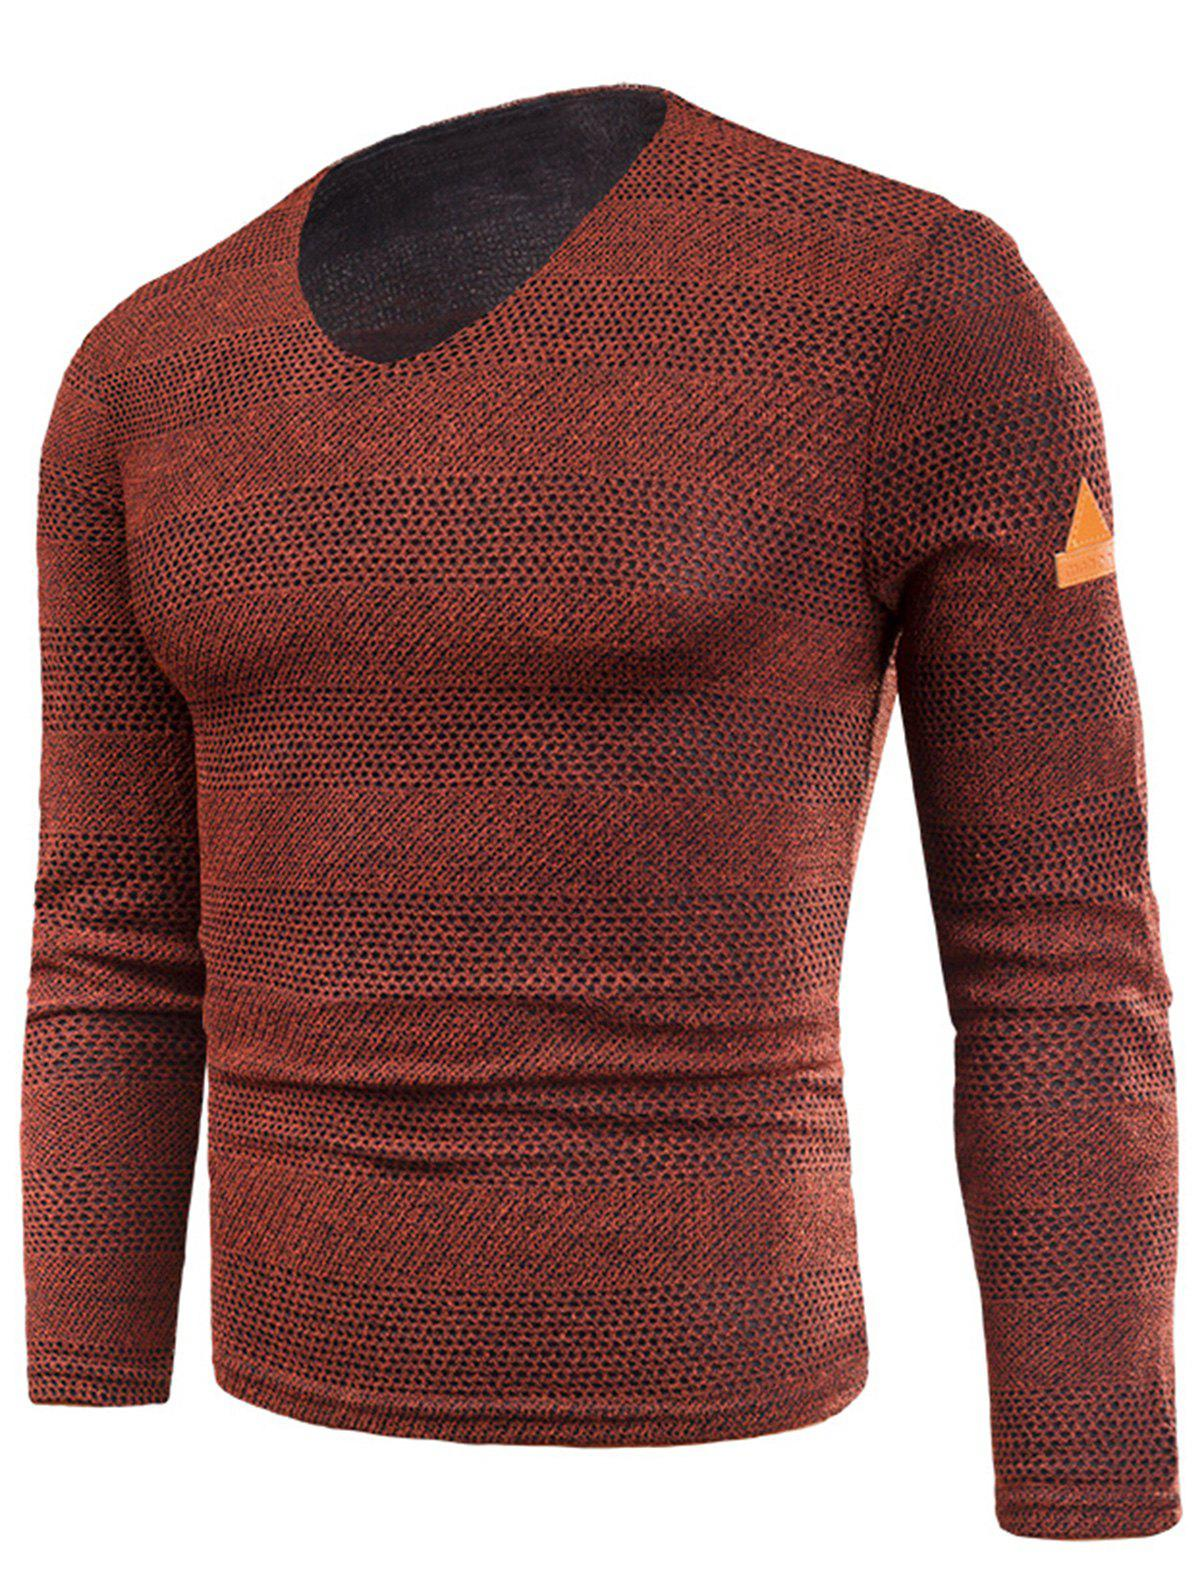 Fancy V Neck Long Sleeve Fleece Knitted T-shirt